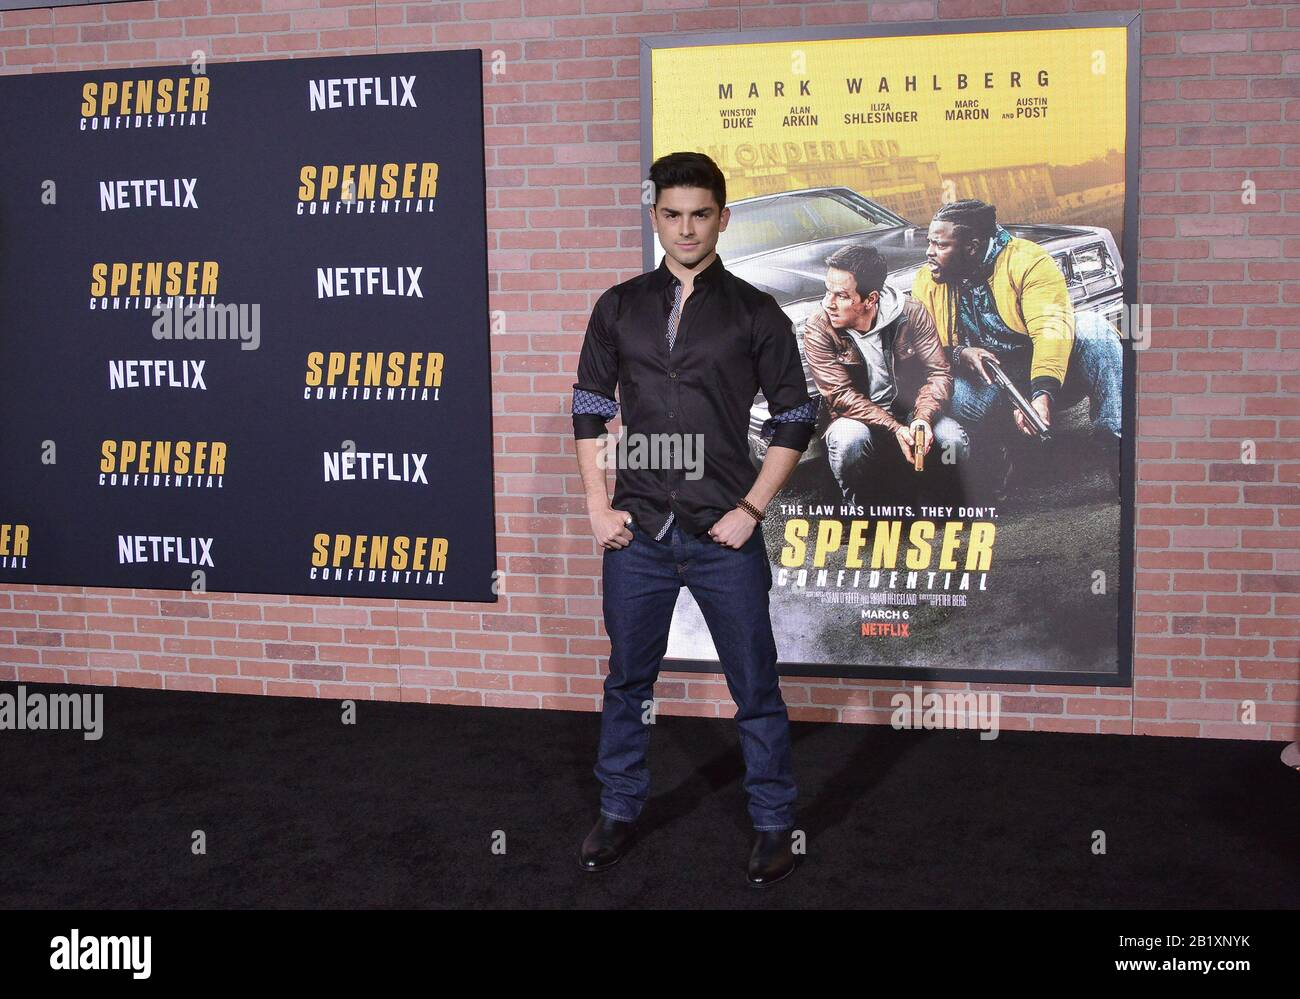 Los Angeles Usa 27th Feb 2020 Diego Tinoco Arrives At The Netflix S Spenser Confidential Premiere Held At The Regency Village Theatre In Westwood Ca On Thursday February 27 2020 Photo By Sthanlee